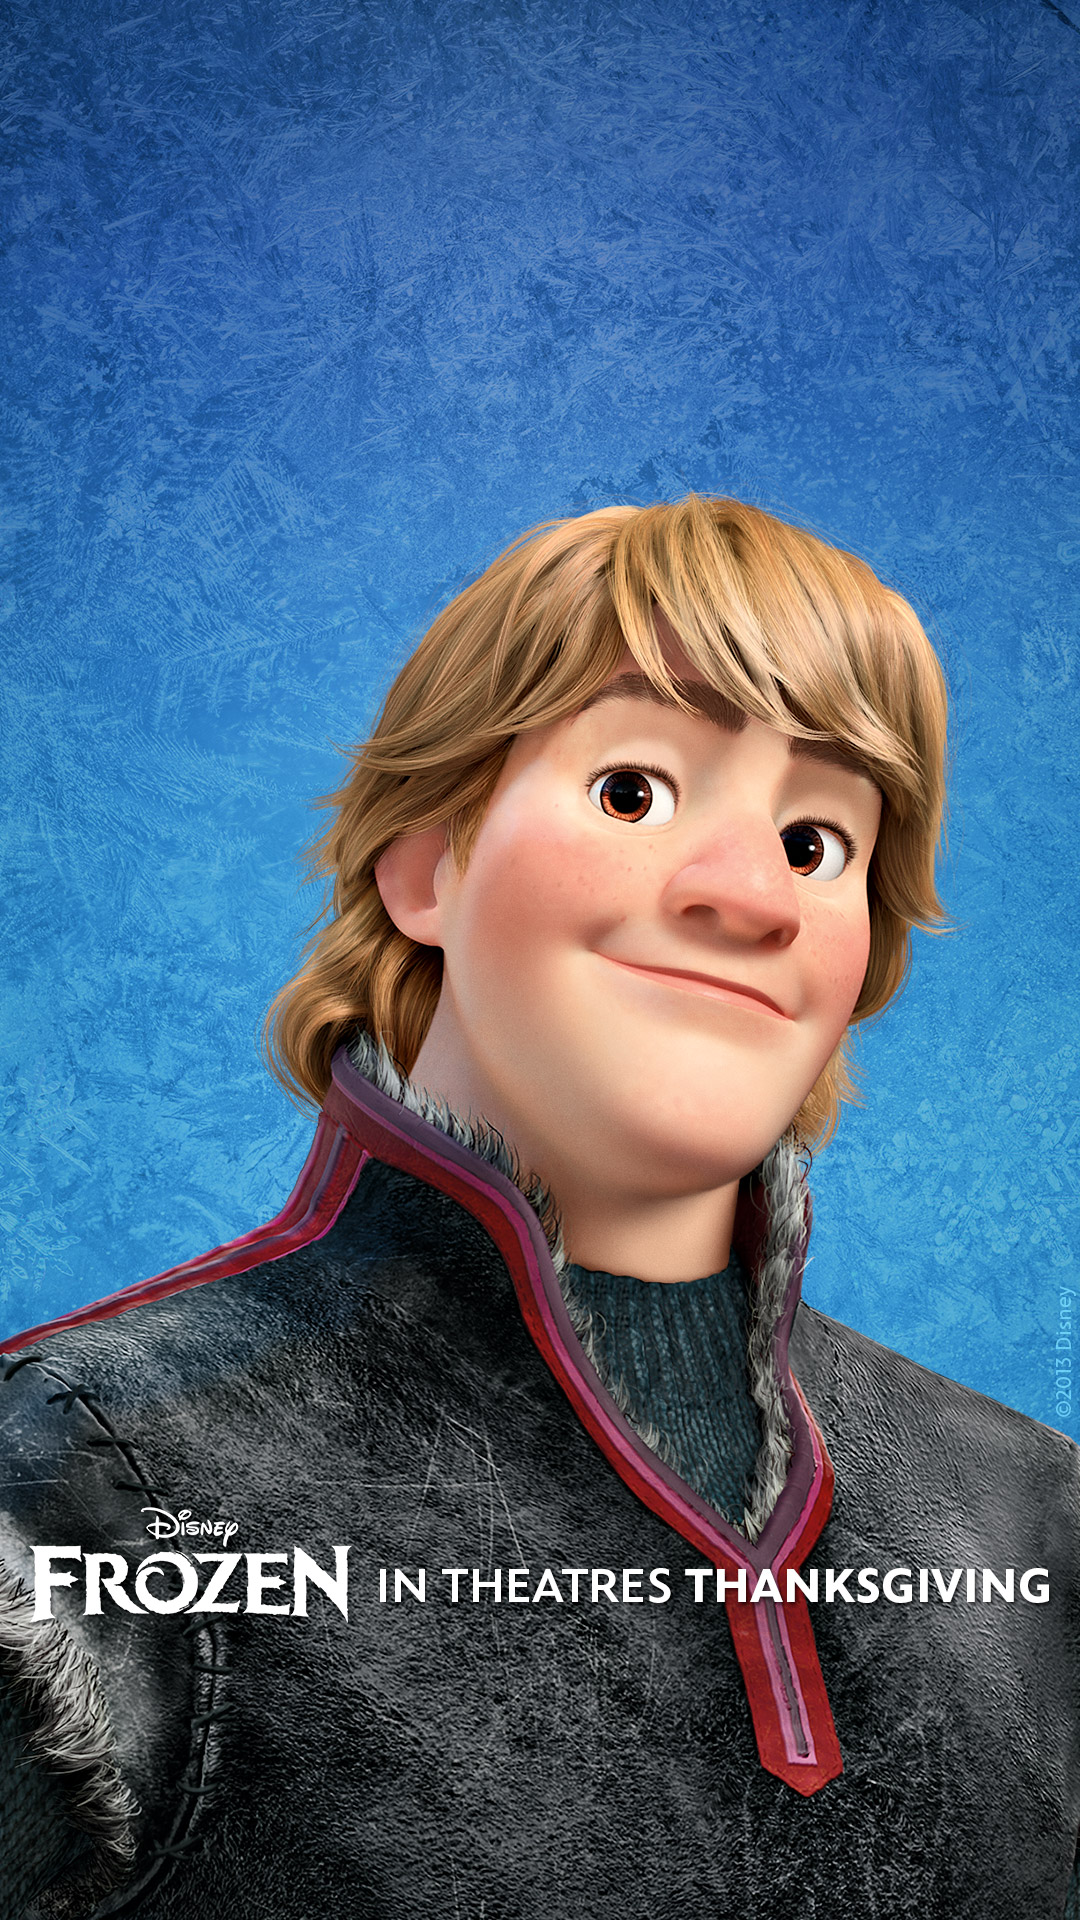 kristoff frozen photo - photo #6